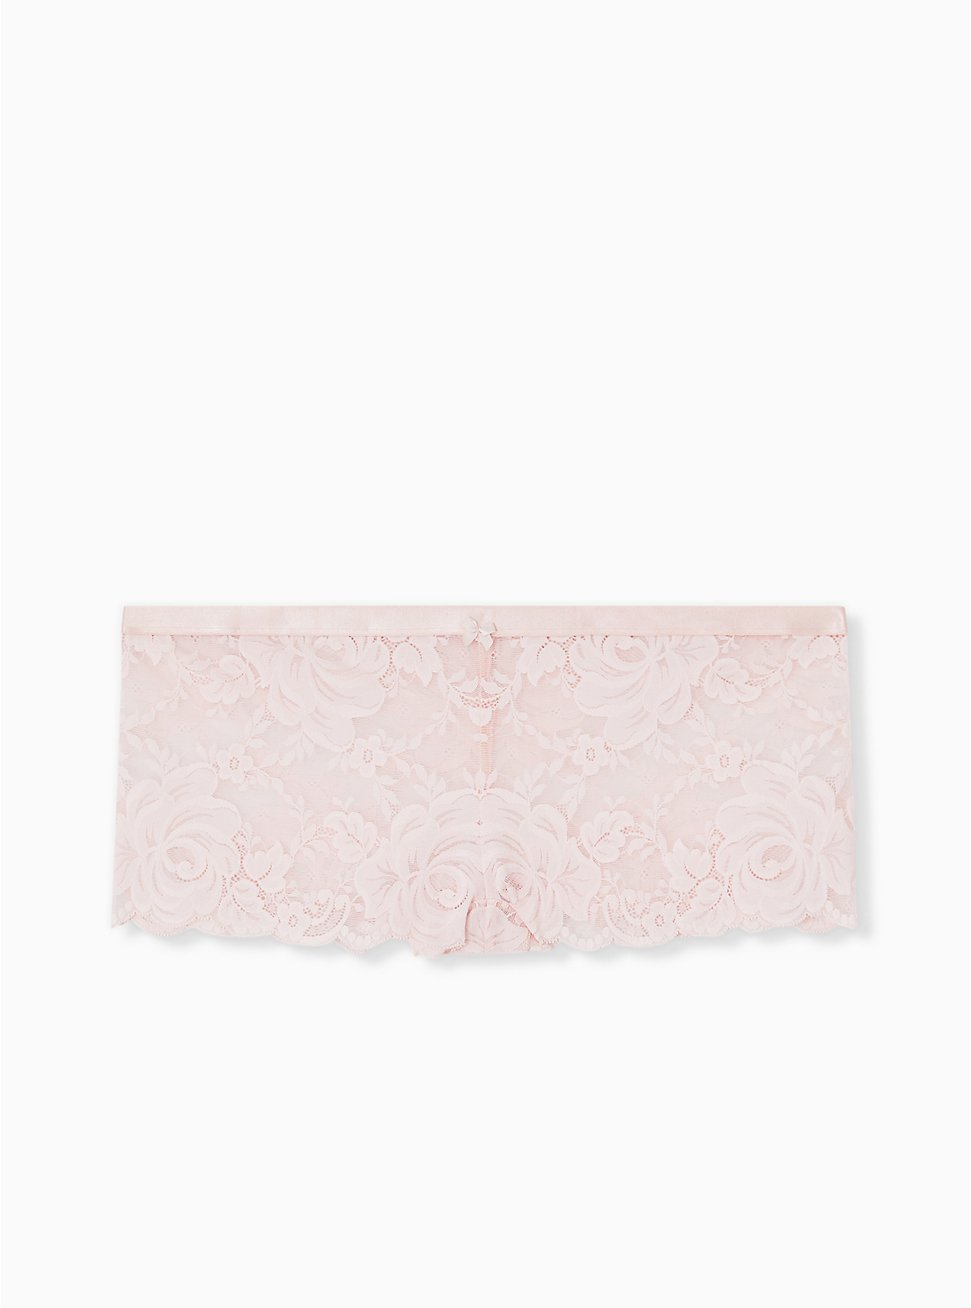 Light Pink Lace Cheeky Panty , LOTUS PINK, hi-res